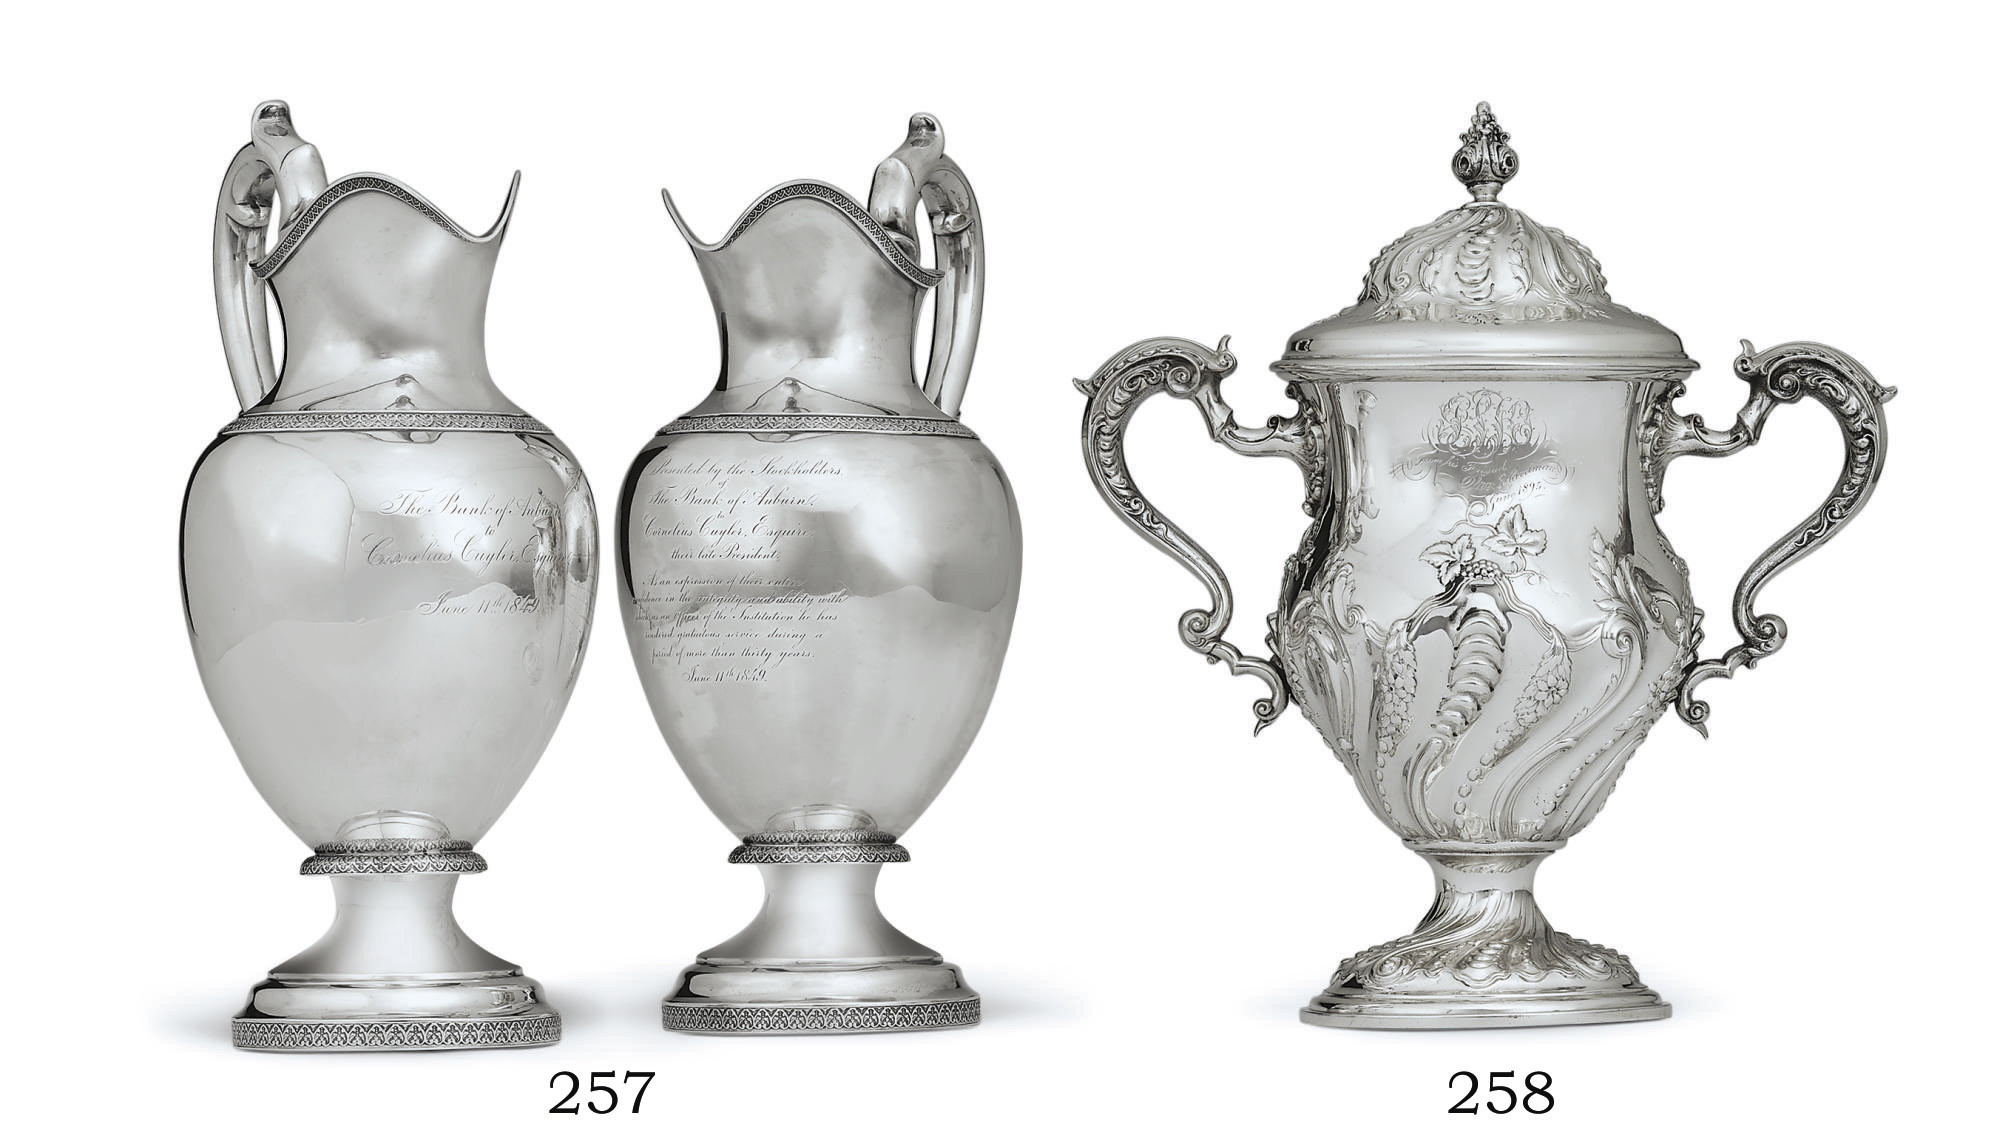 AN AMERICAN SILVER CUP AND COVER IN THE GEORGE II STYLE